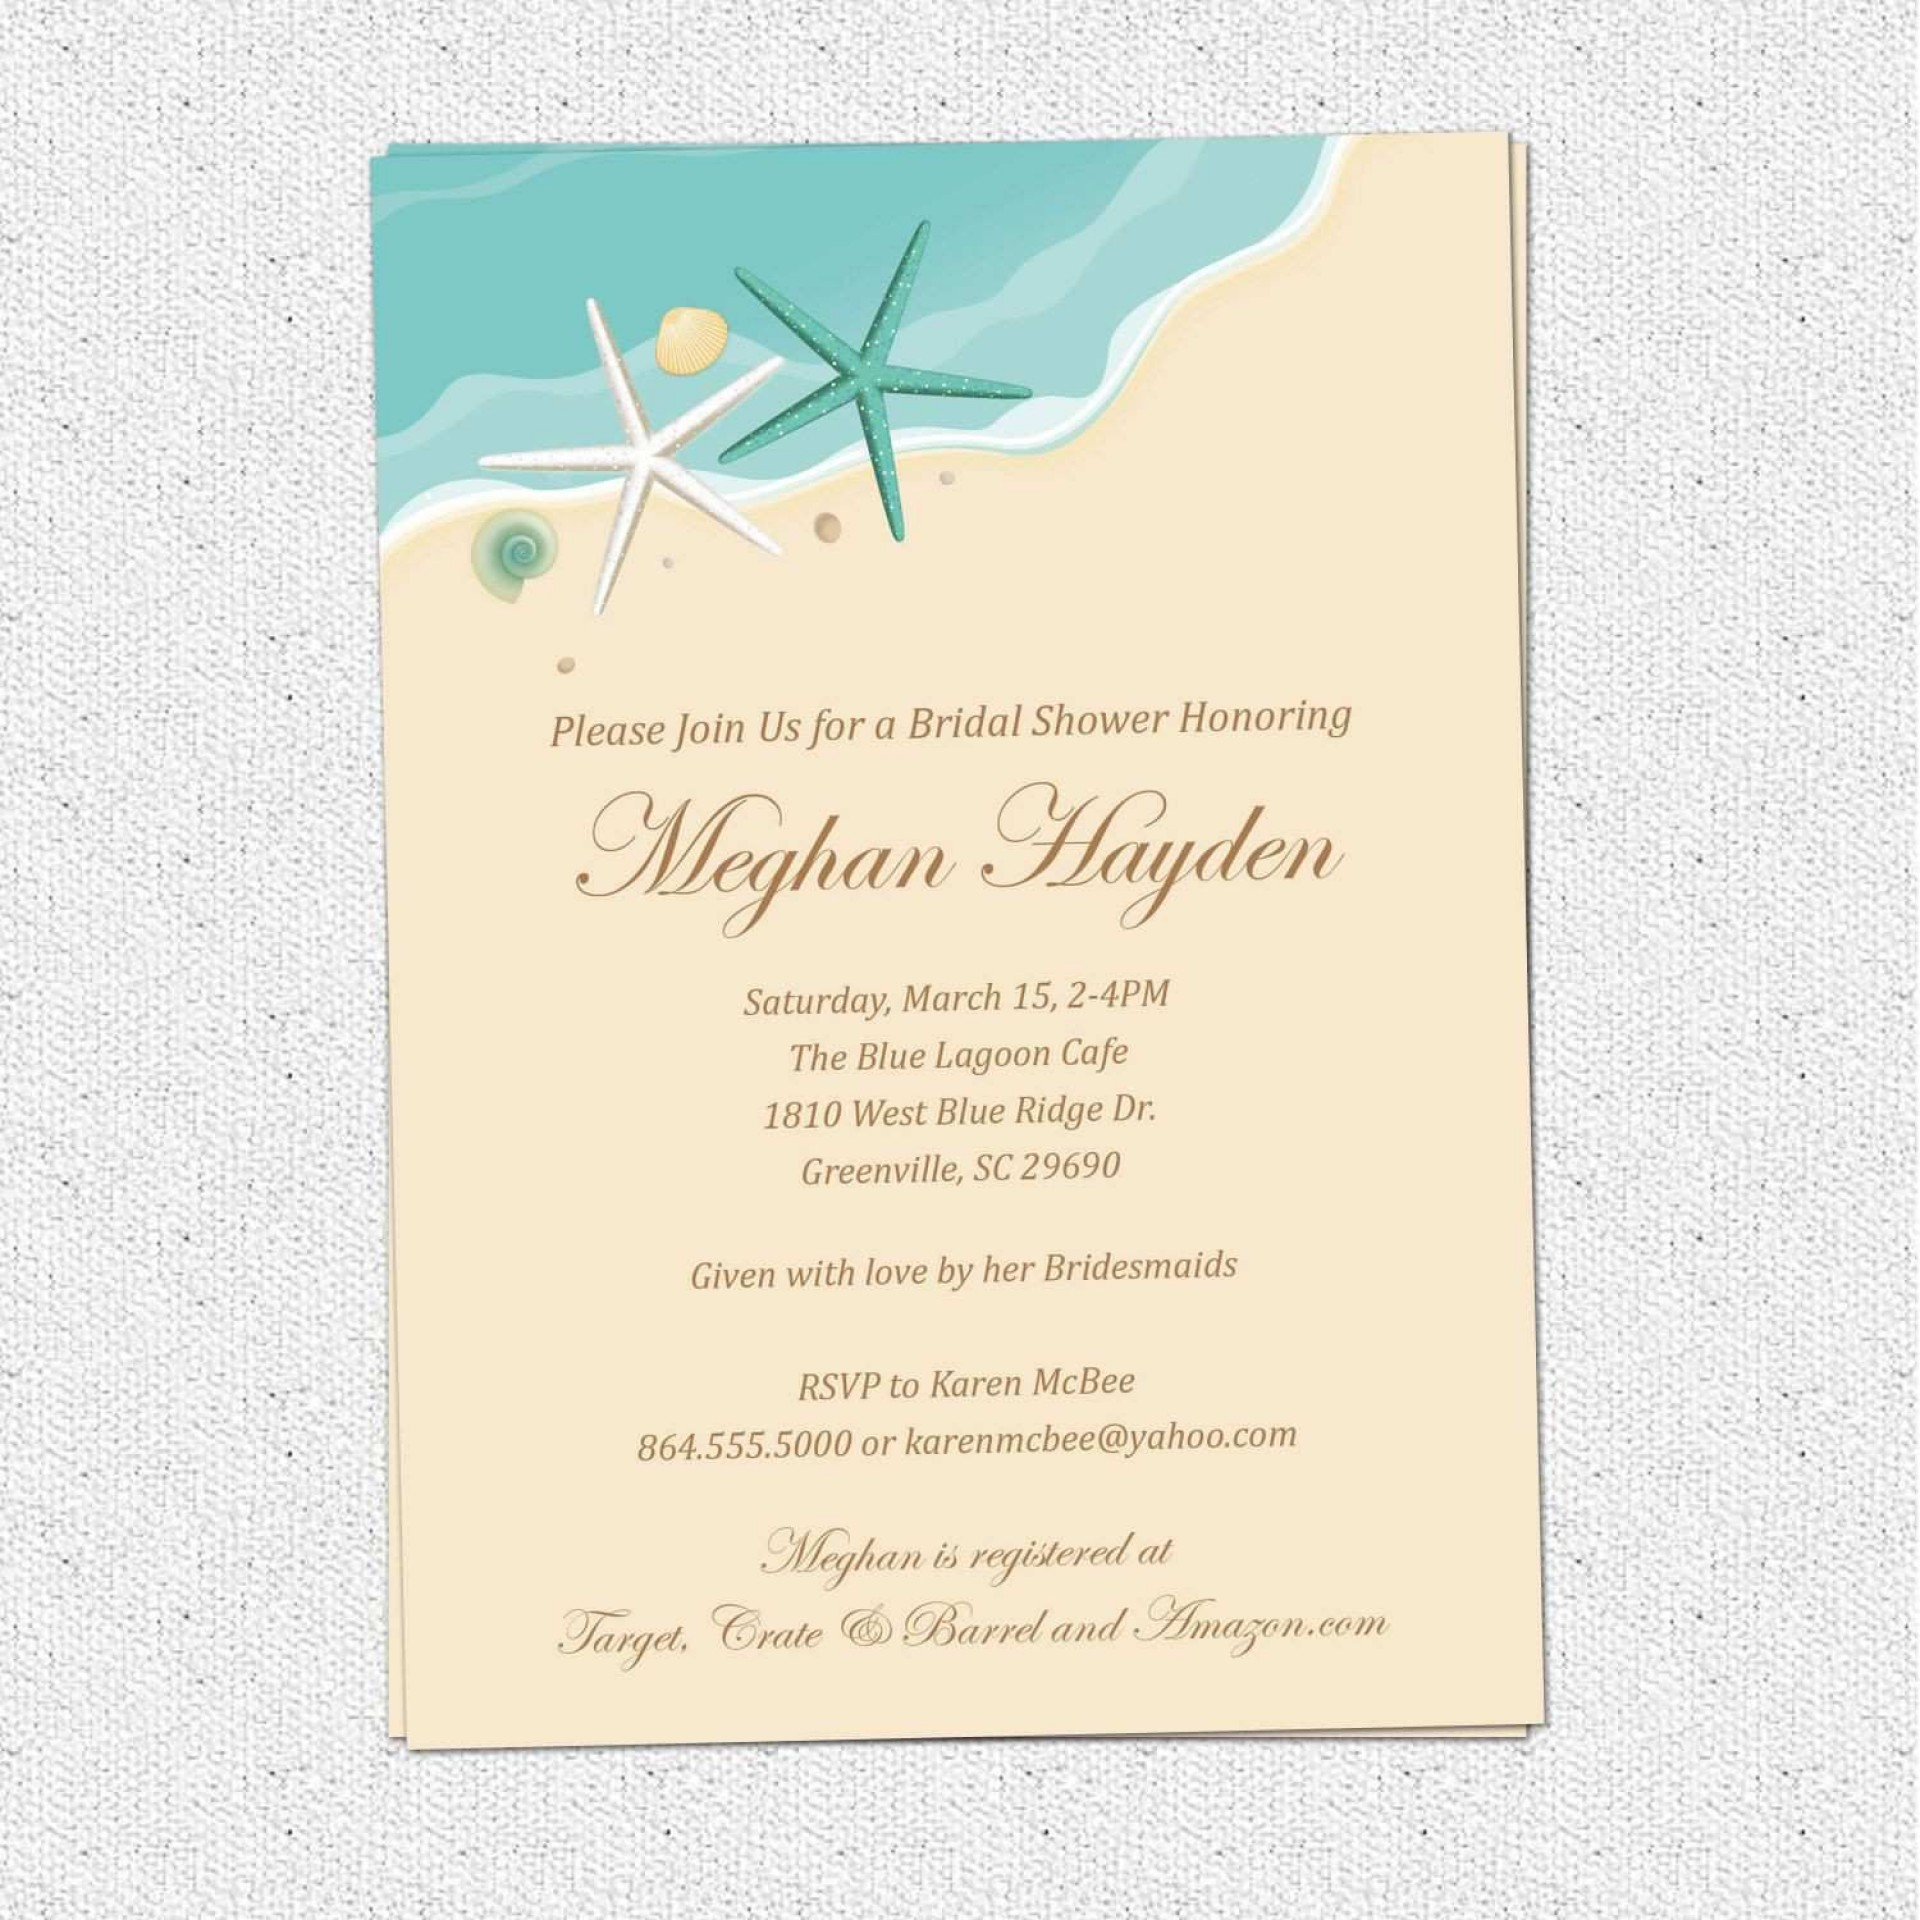 000 Top Beach Wedding Invitation Template Picture  Templates Free Download For Word1920